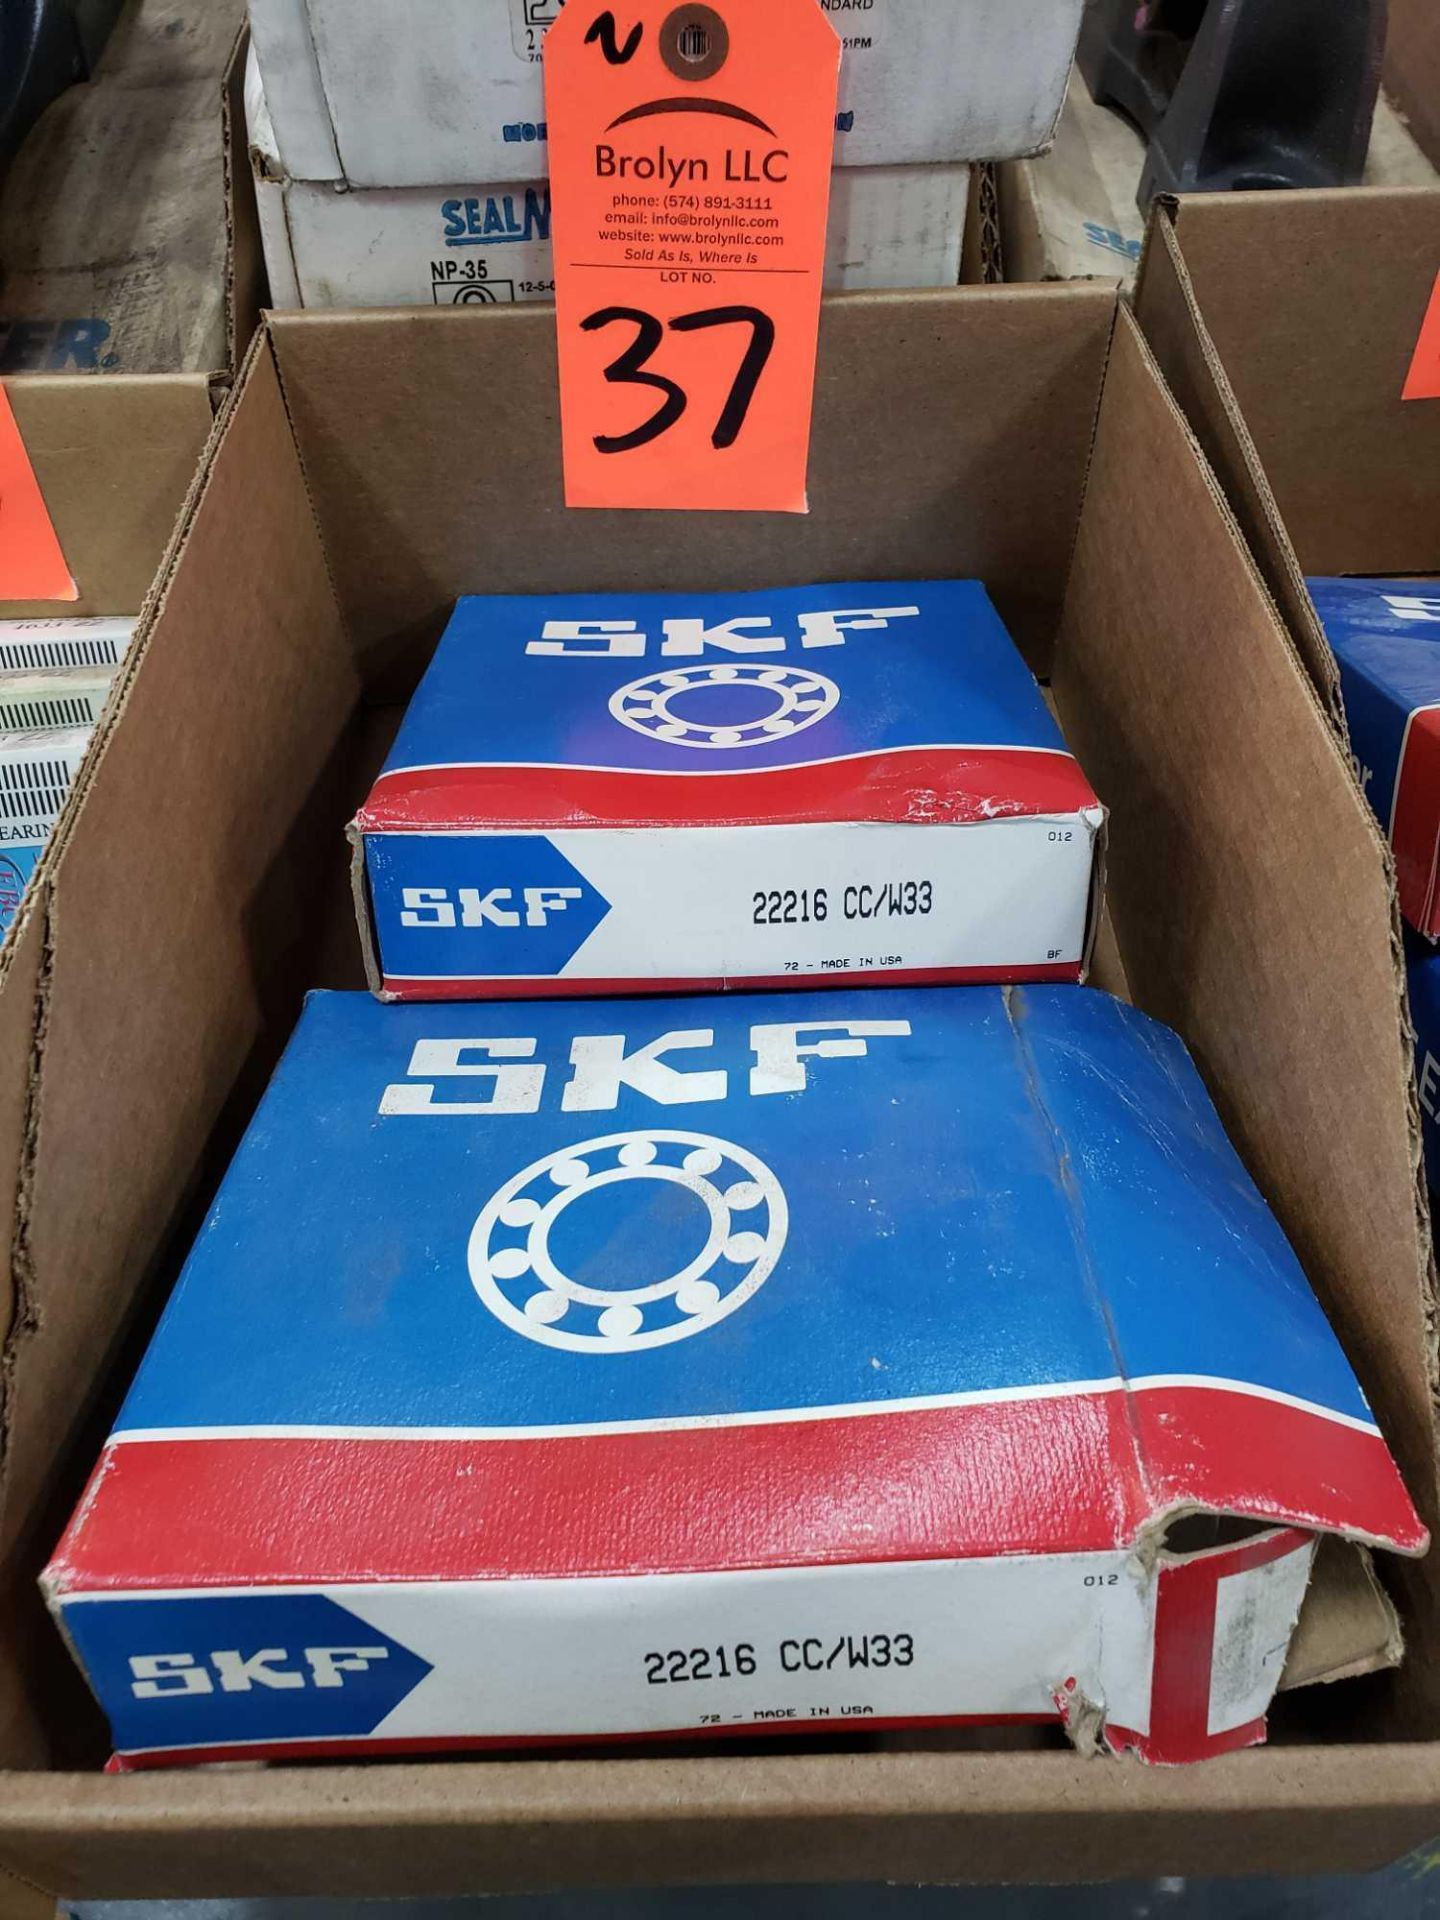 Lot 37 - Qty 2 - SKF bearings model 22216CC/W33. New in boxes.